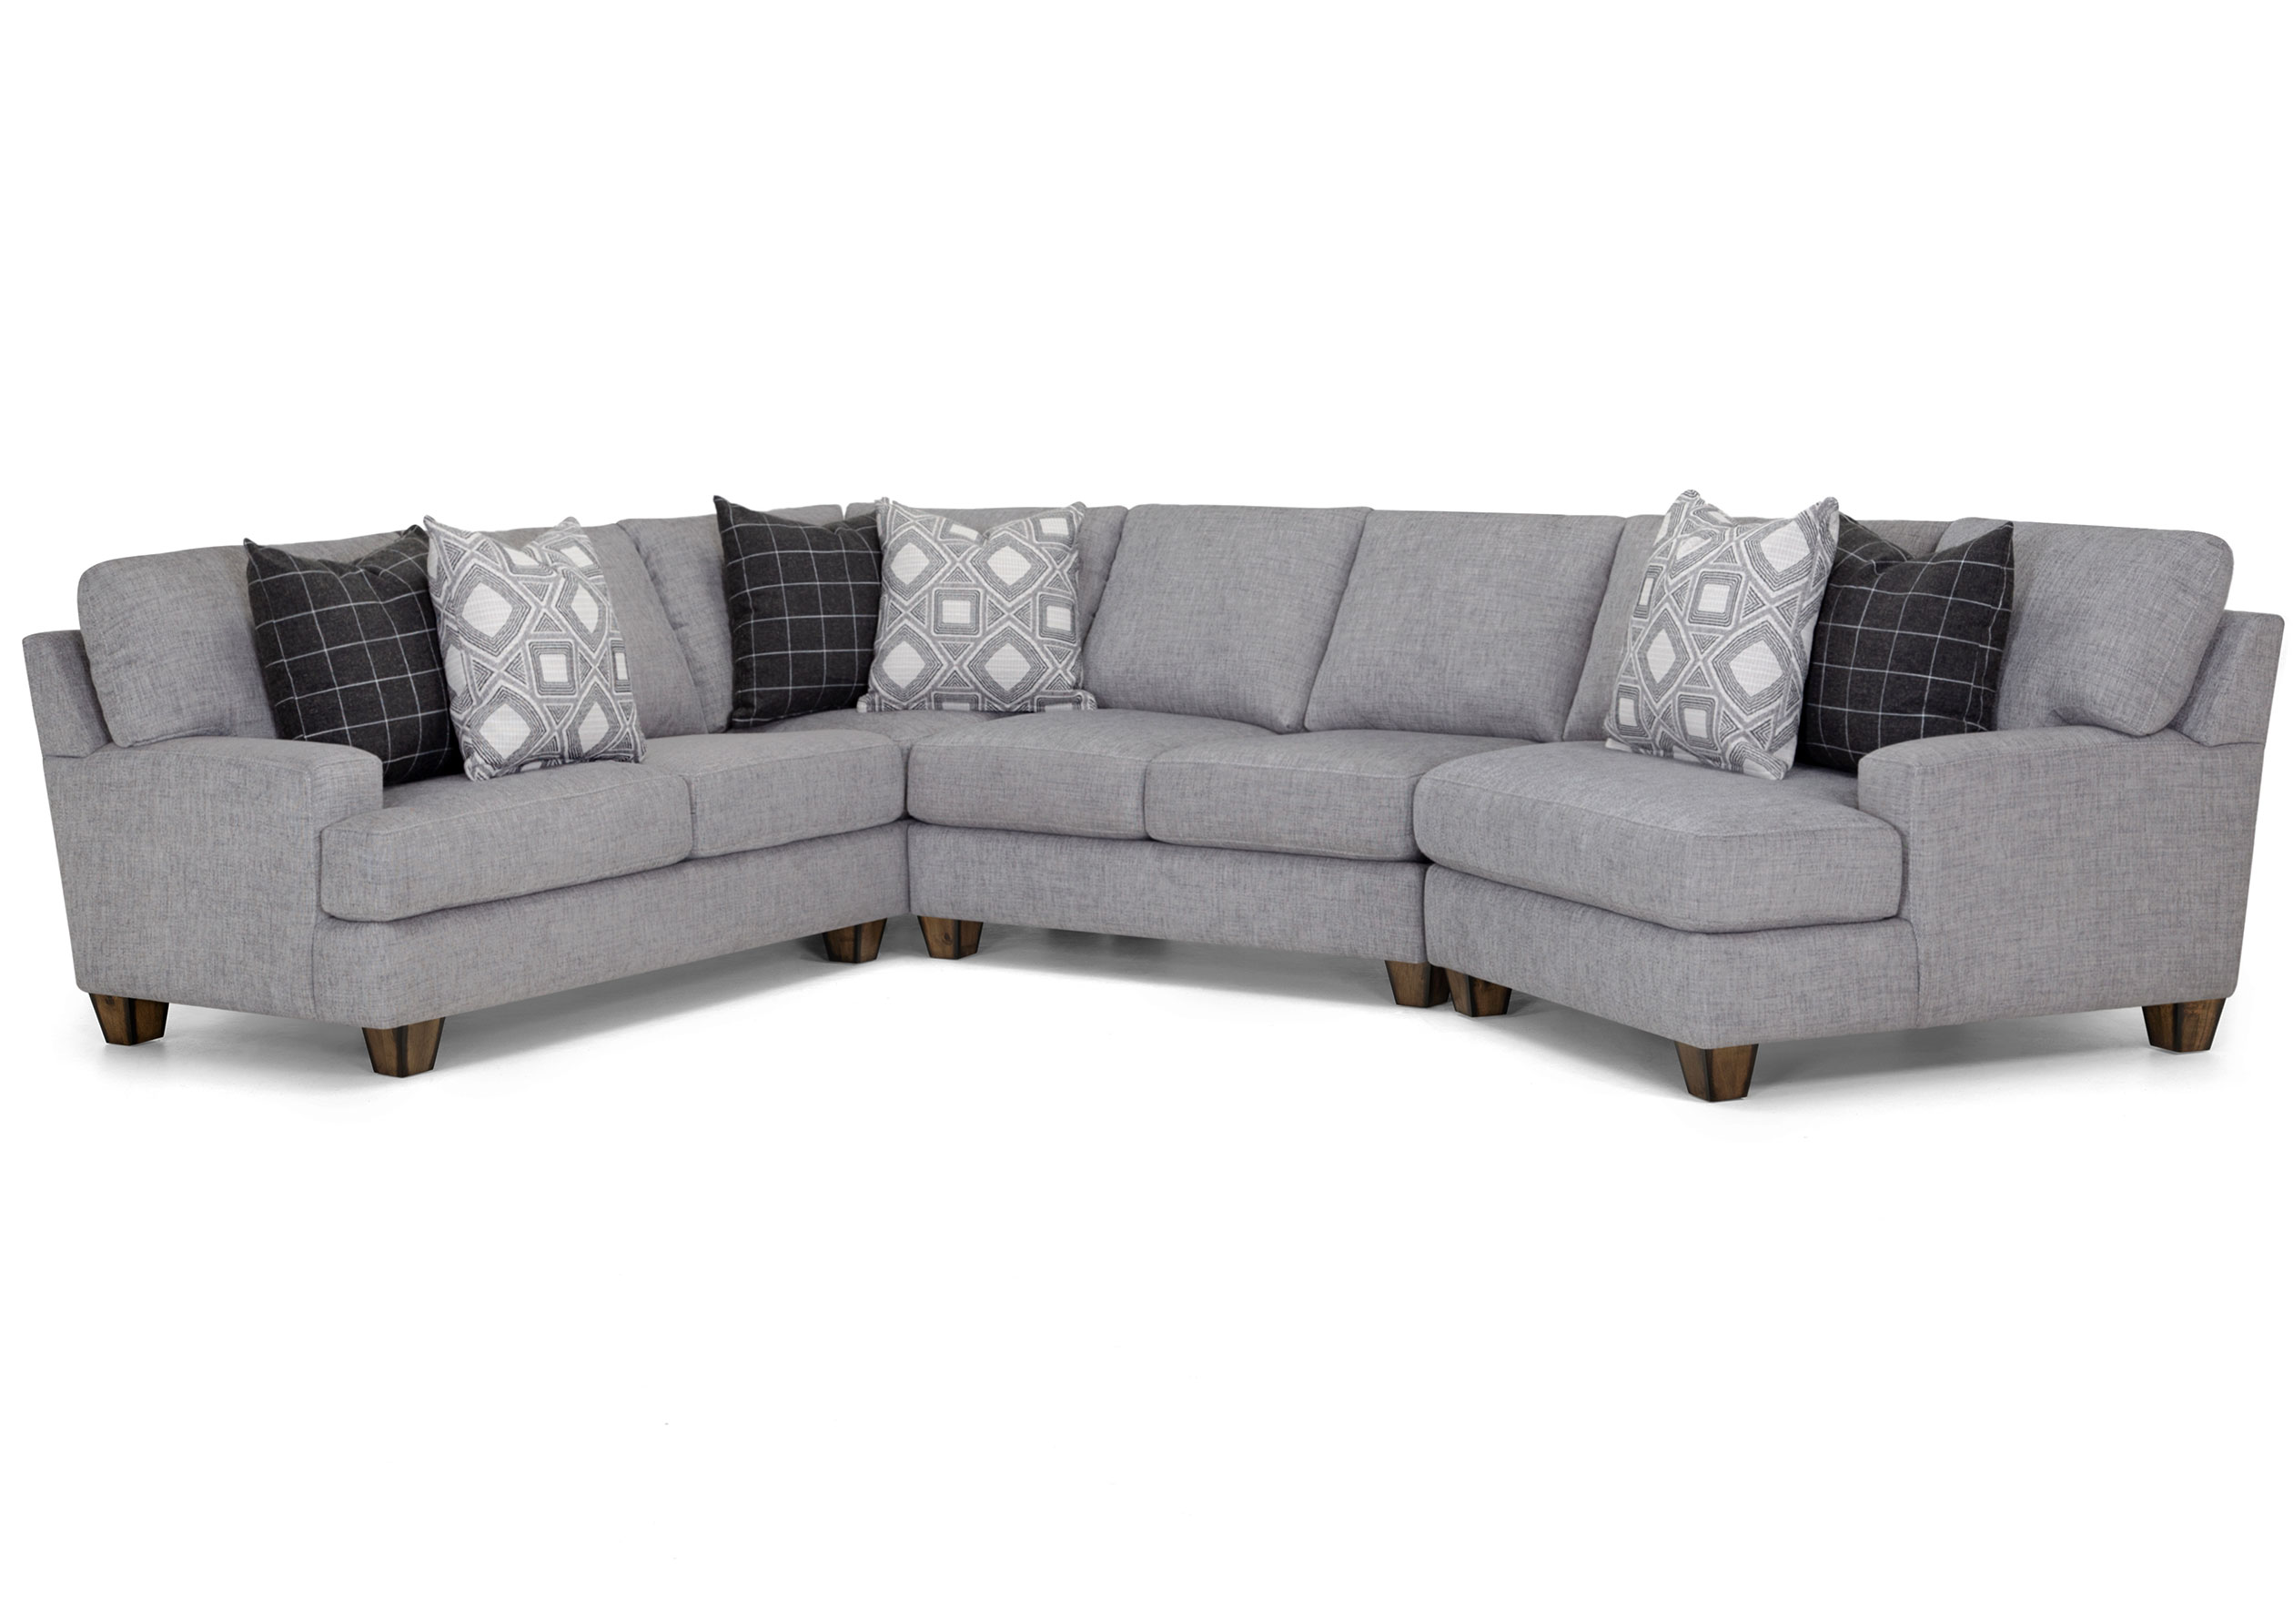 Belmont 3 Piece Sectional Sofas And